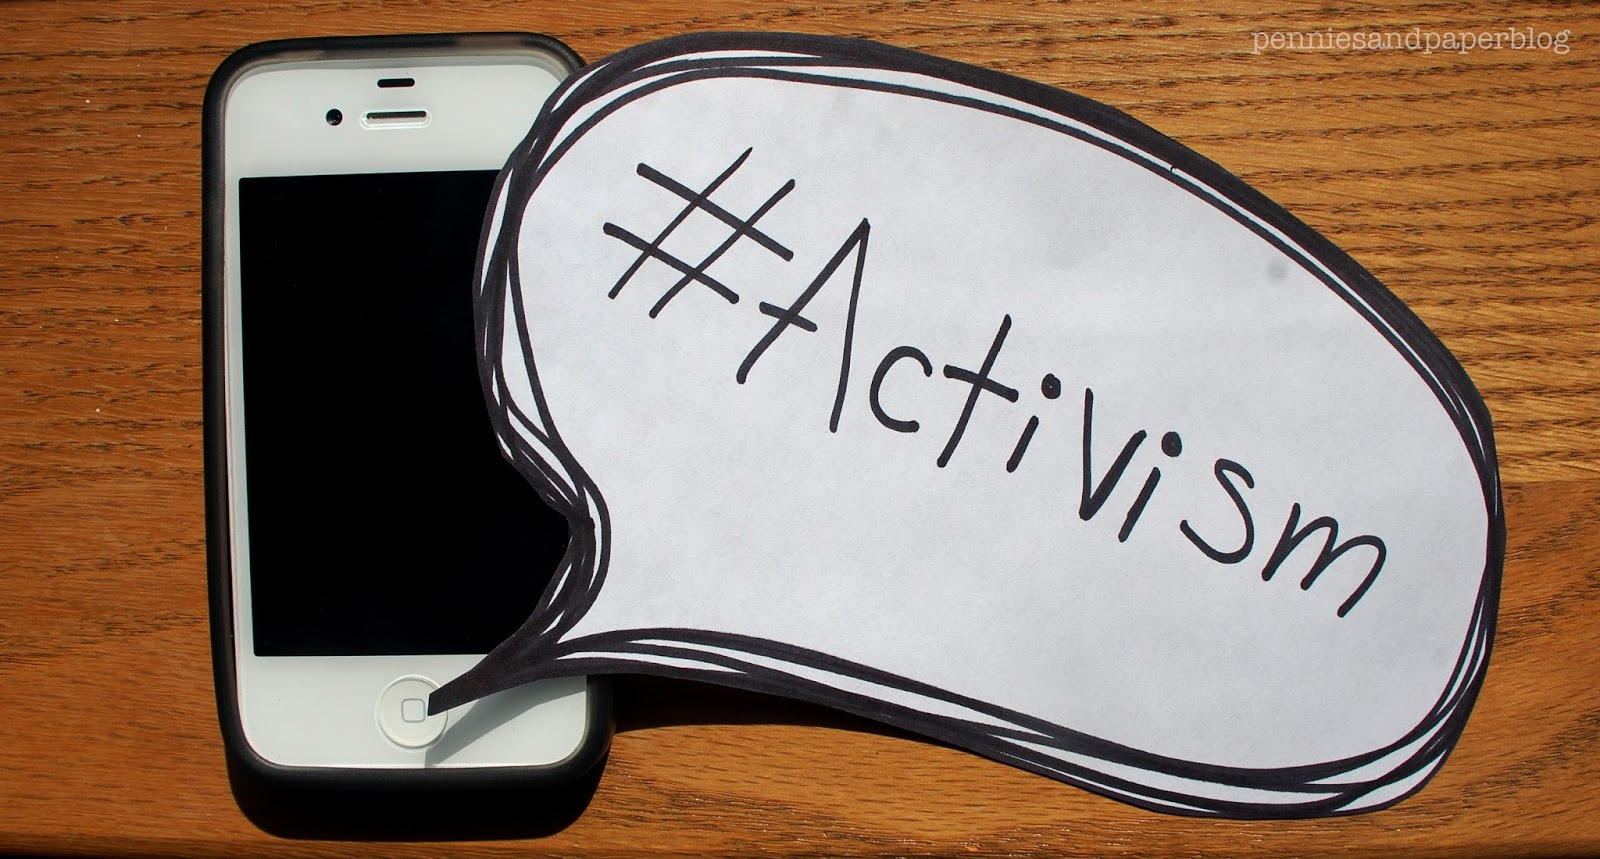 #Activism & Link Up the Love | Pennies & Paper Blog